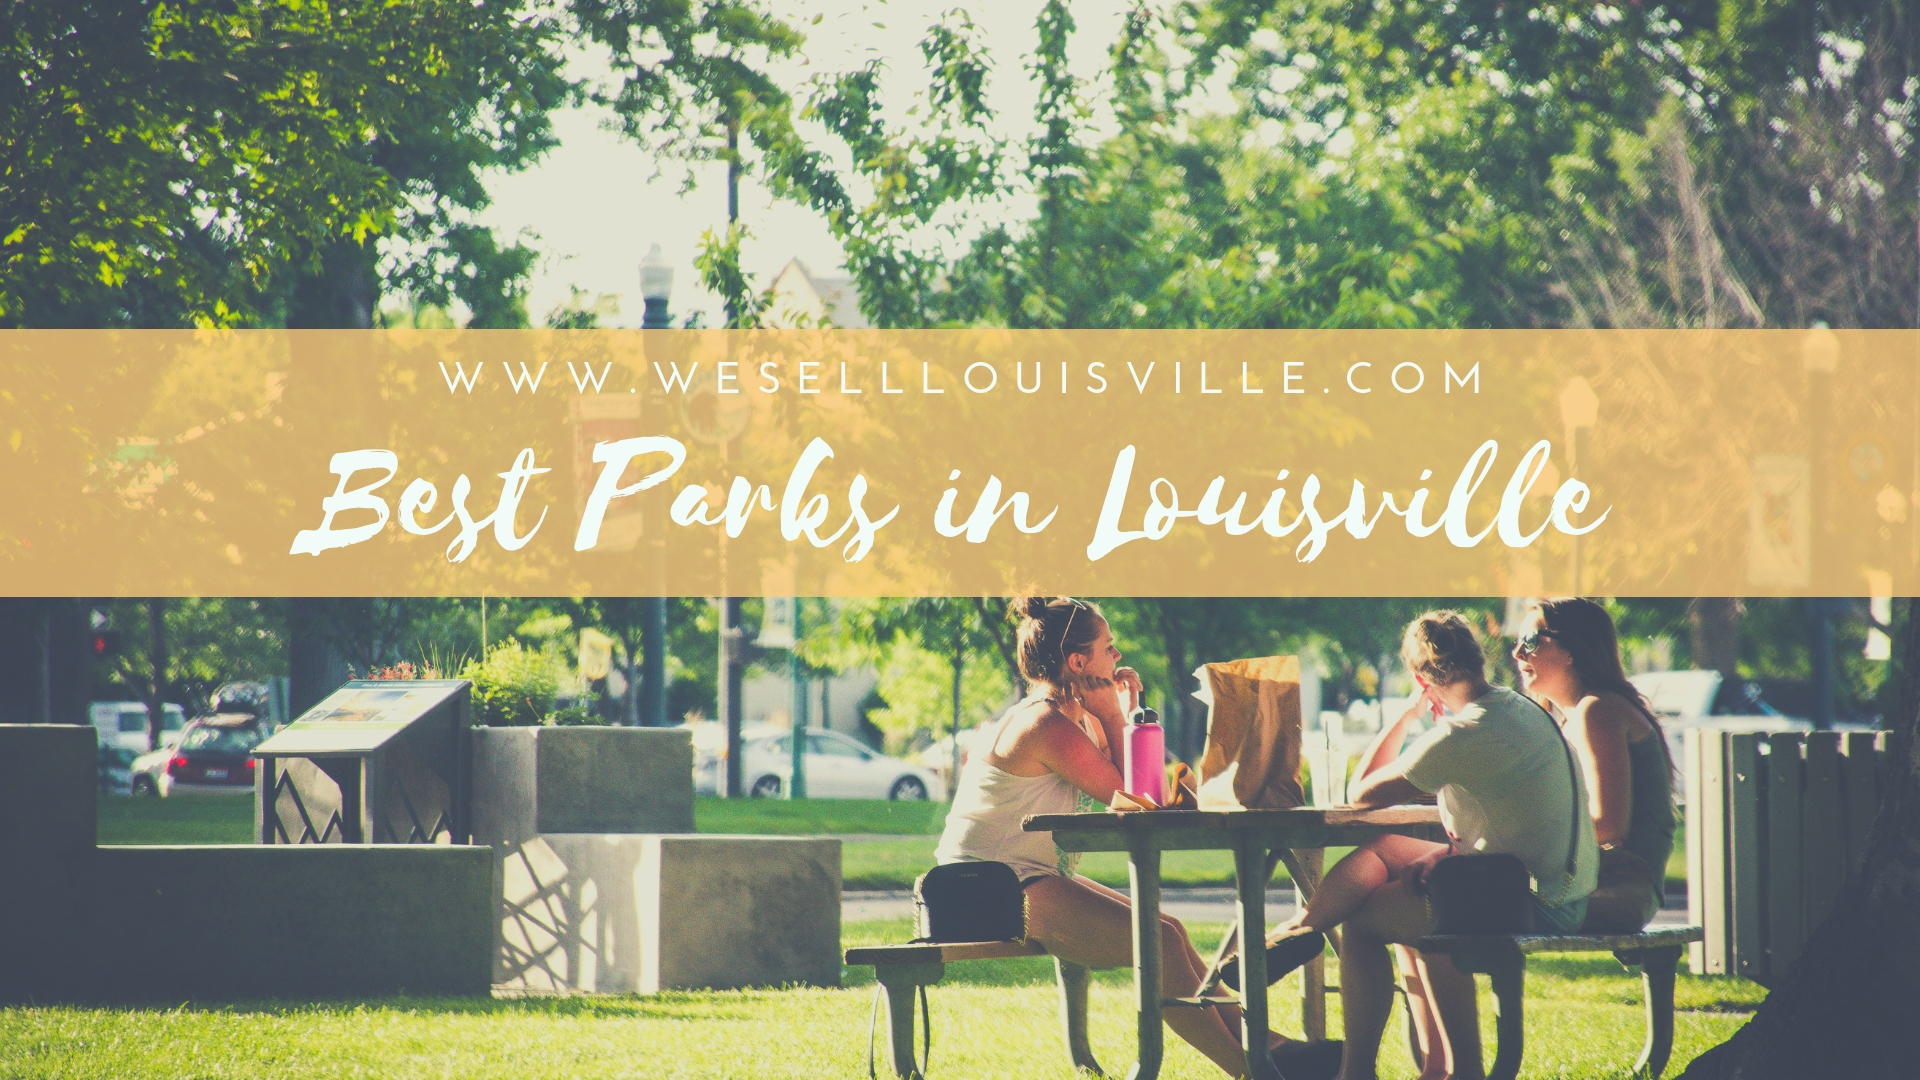 Best Parks in Louisville